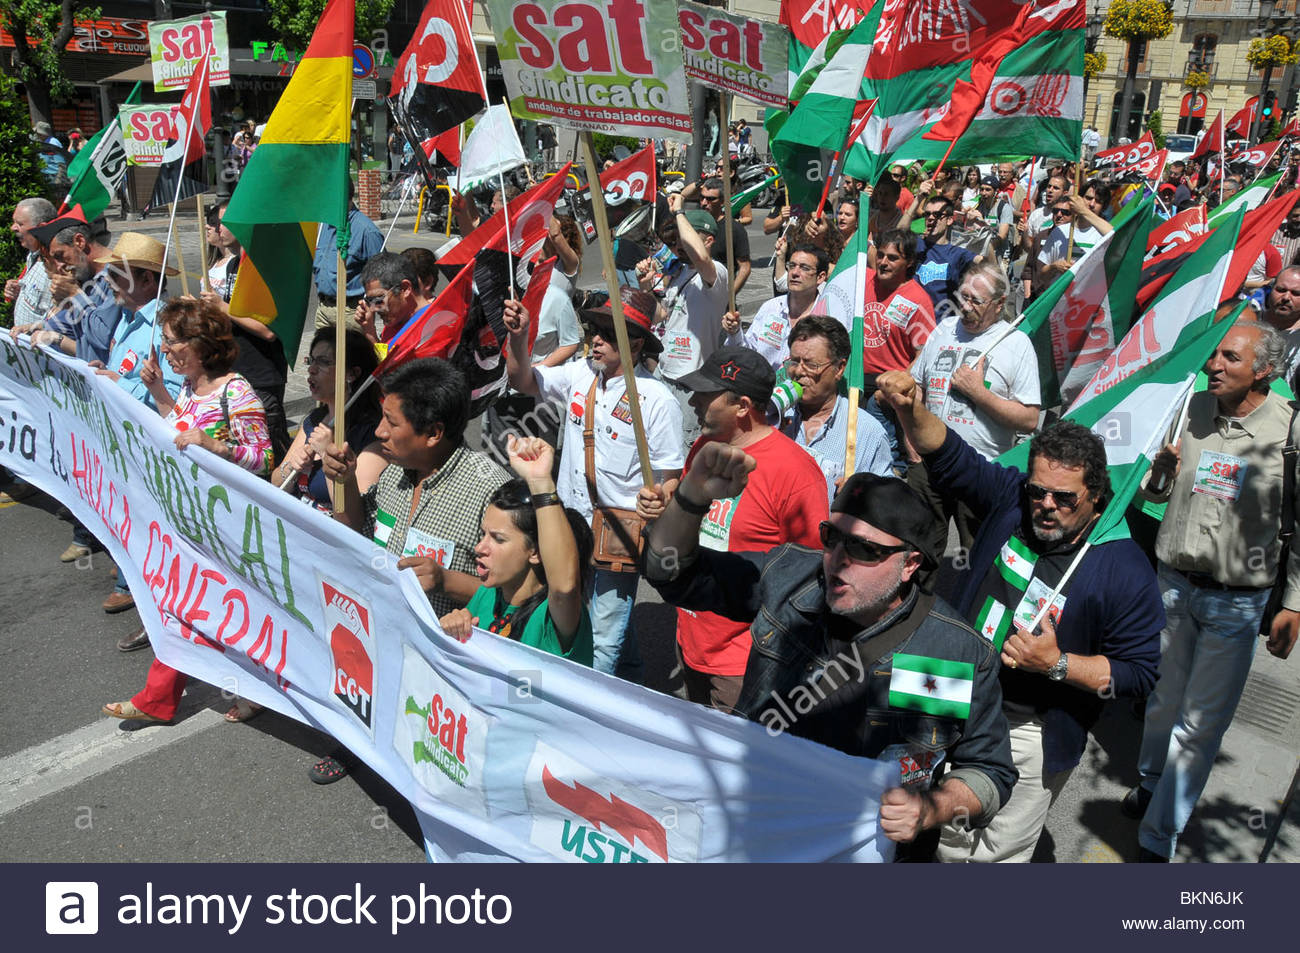 May Day march in Granada, Spain. The March, a traditional world wide event, is held every first of May to celebrate - Stock Image